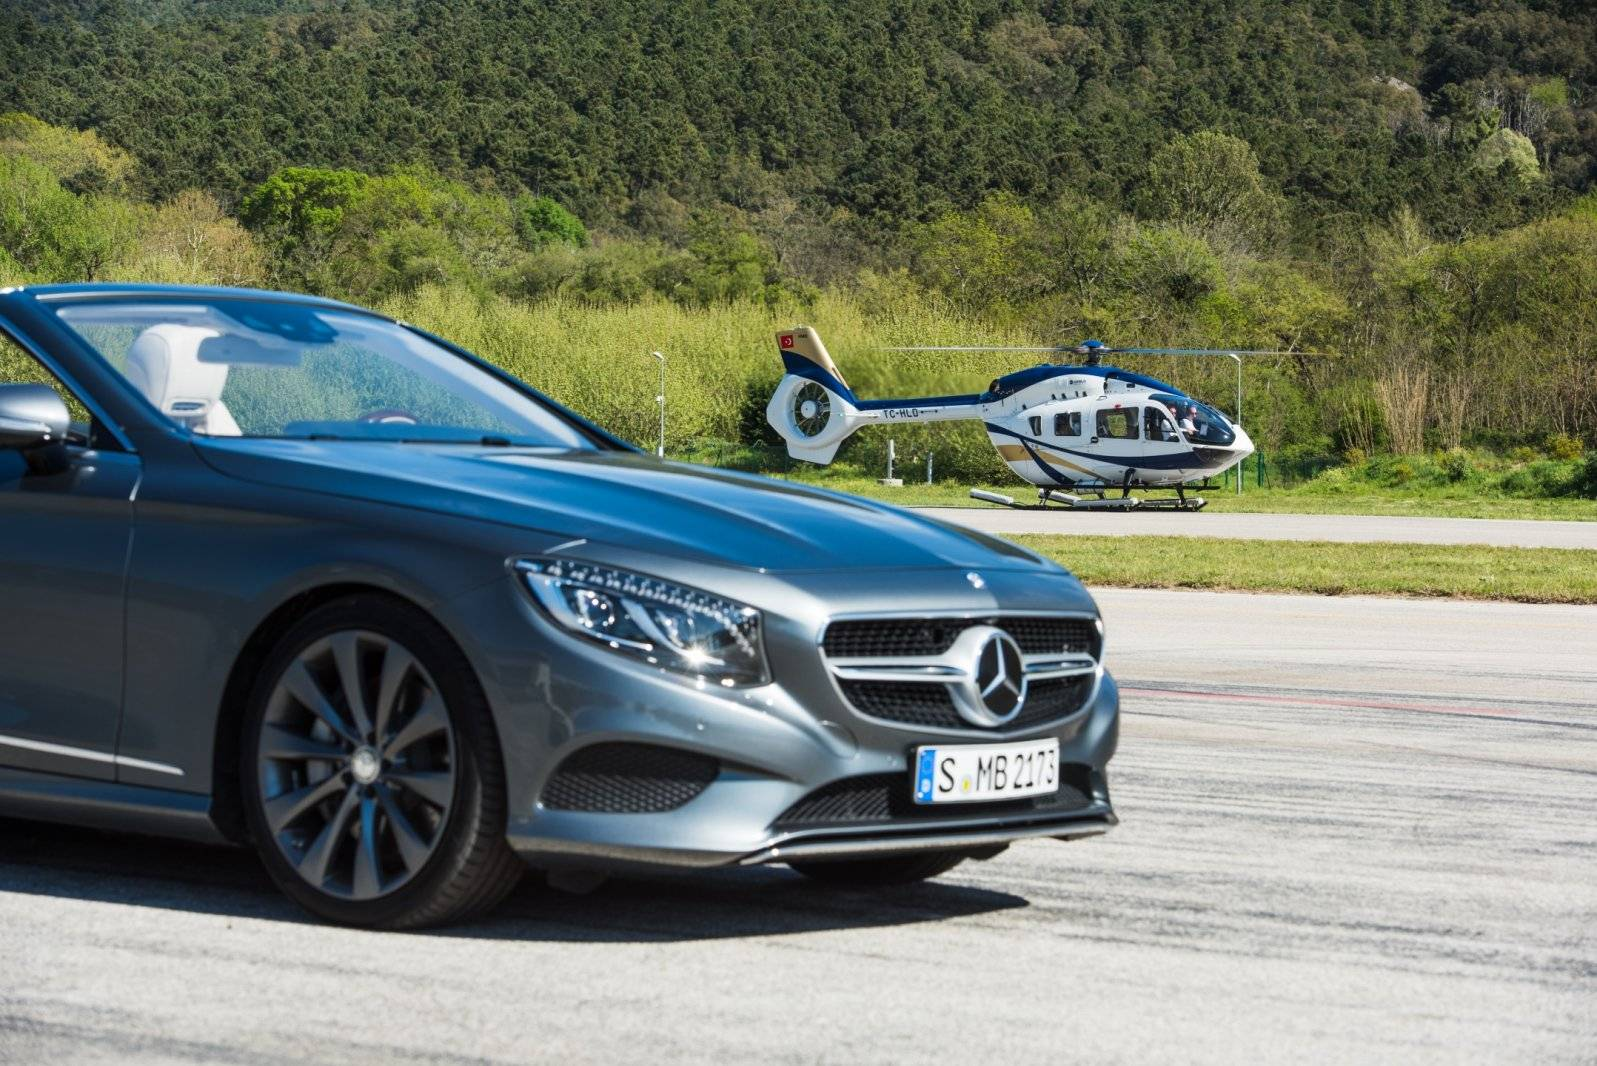 Mercedes benz verkiest het luchtruim autonieuws for Mercedes benz styles